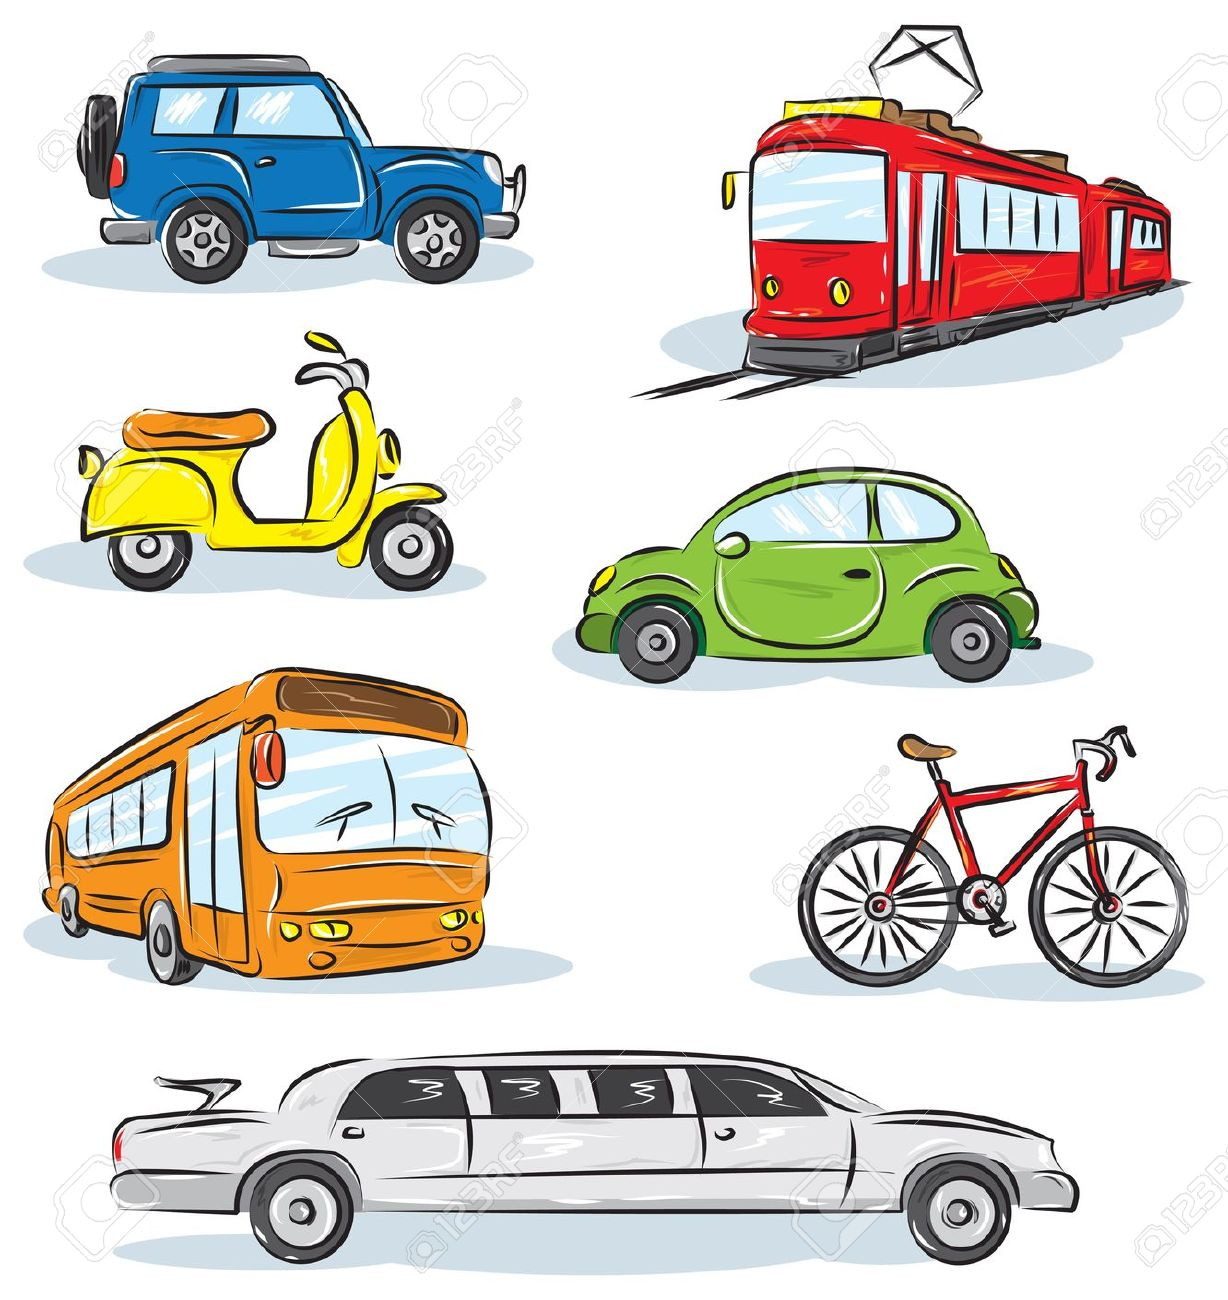 vehicle diagram clip art ford 7 way trailer plug wiring land clipart clipground